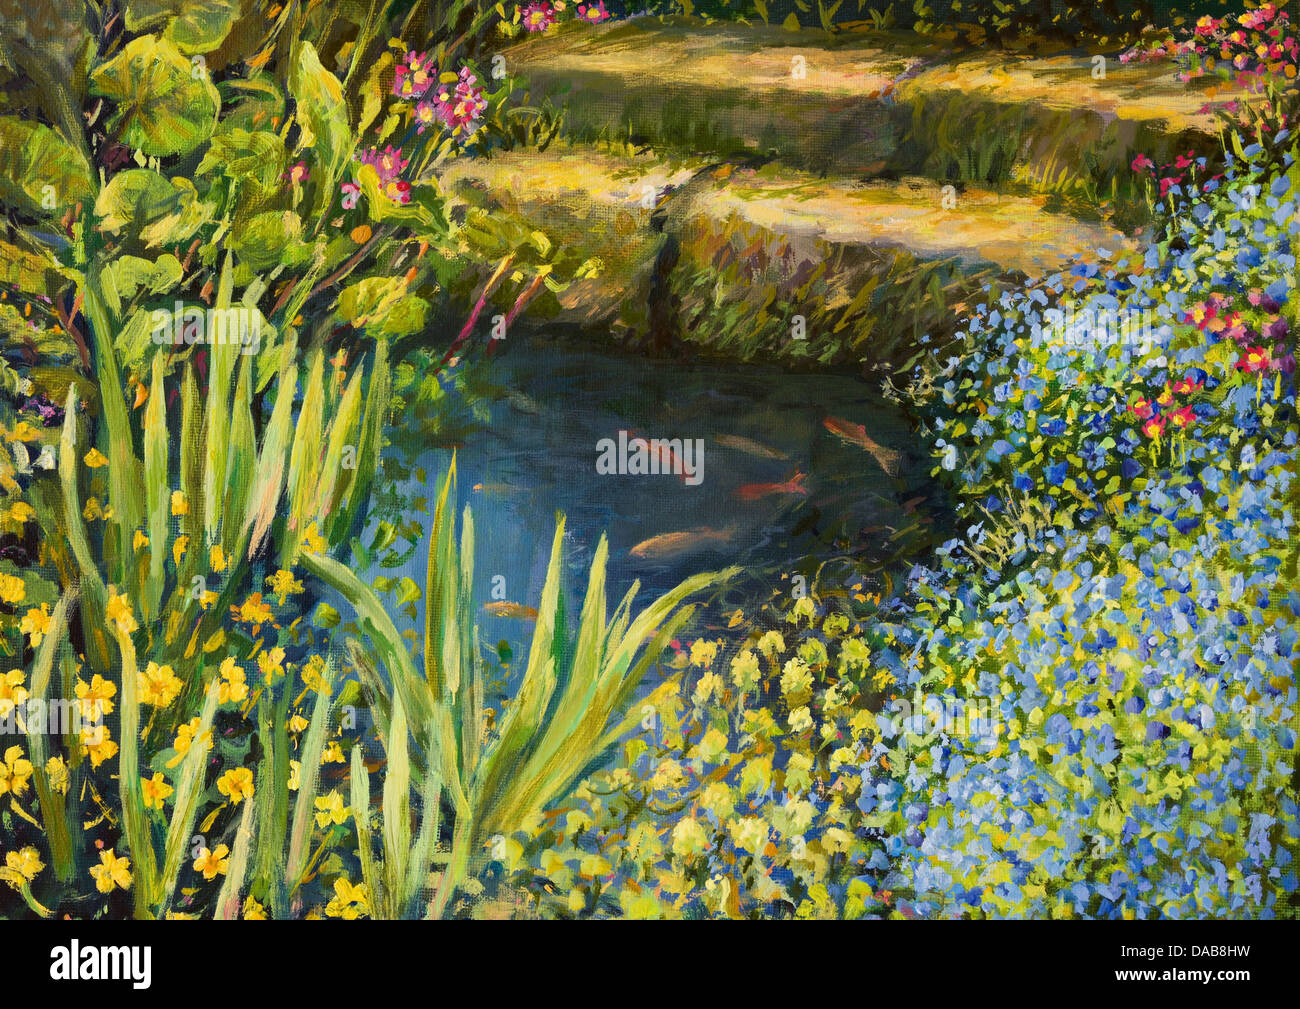 An oil painting on canvas of a small tranquil pond with fishes and colorful blooming flowers. - Stock Image